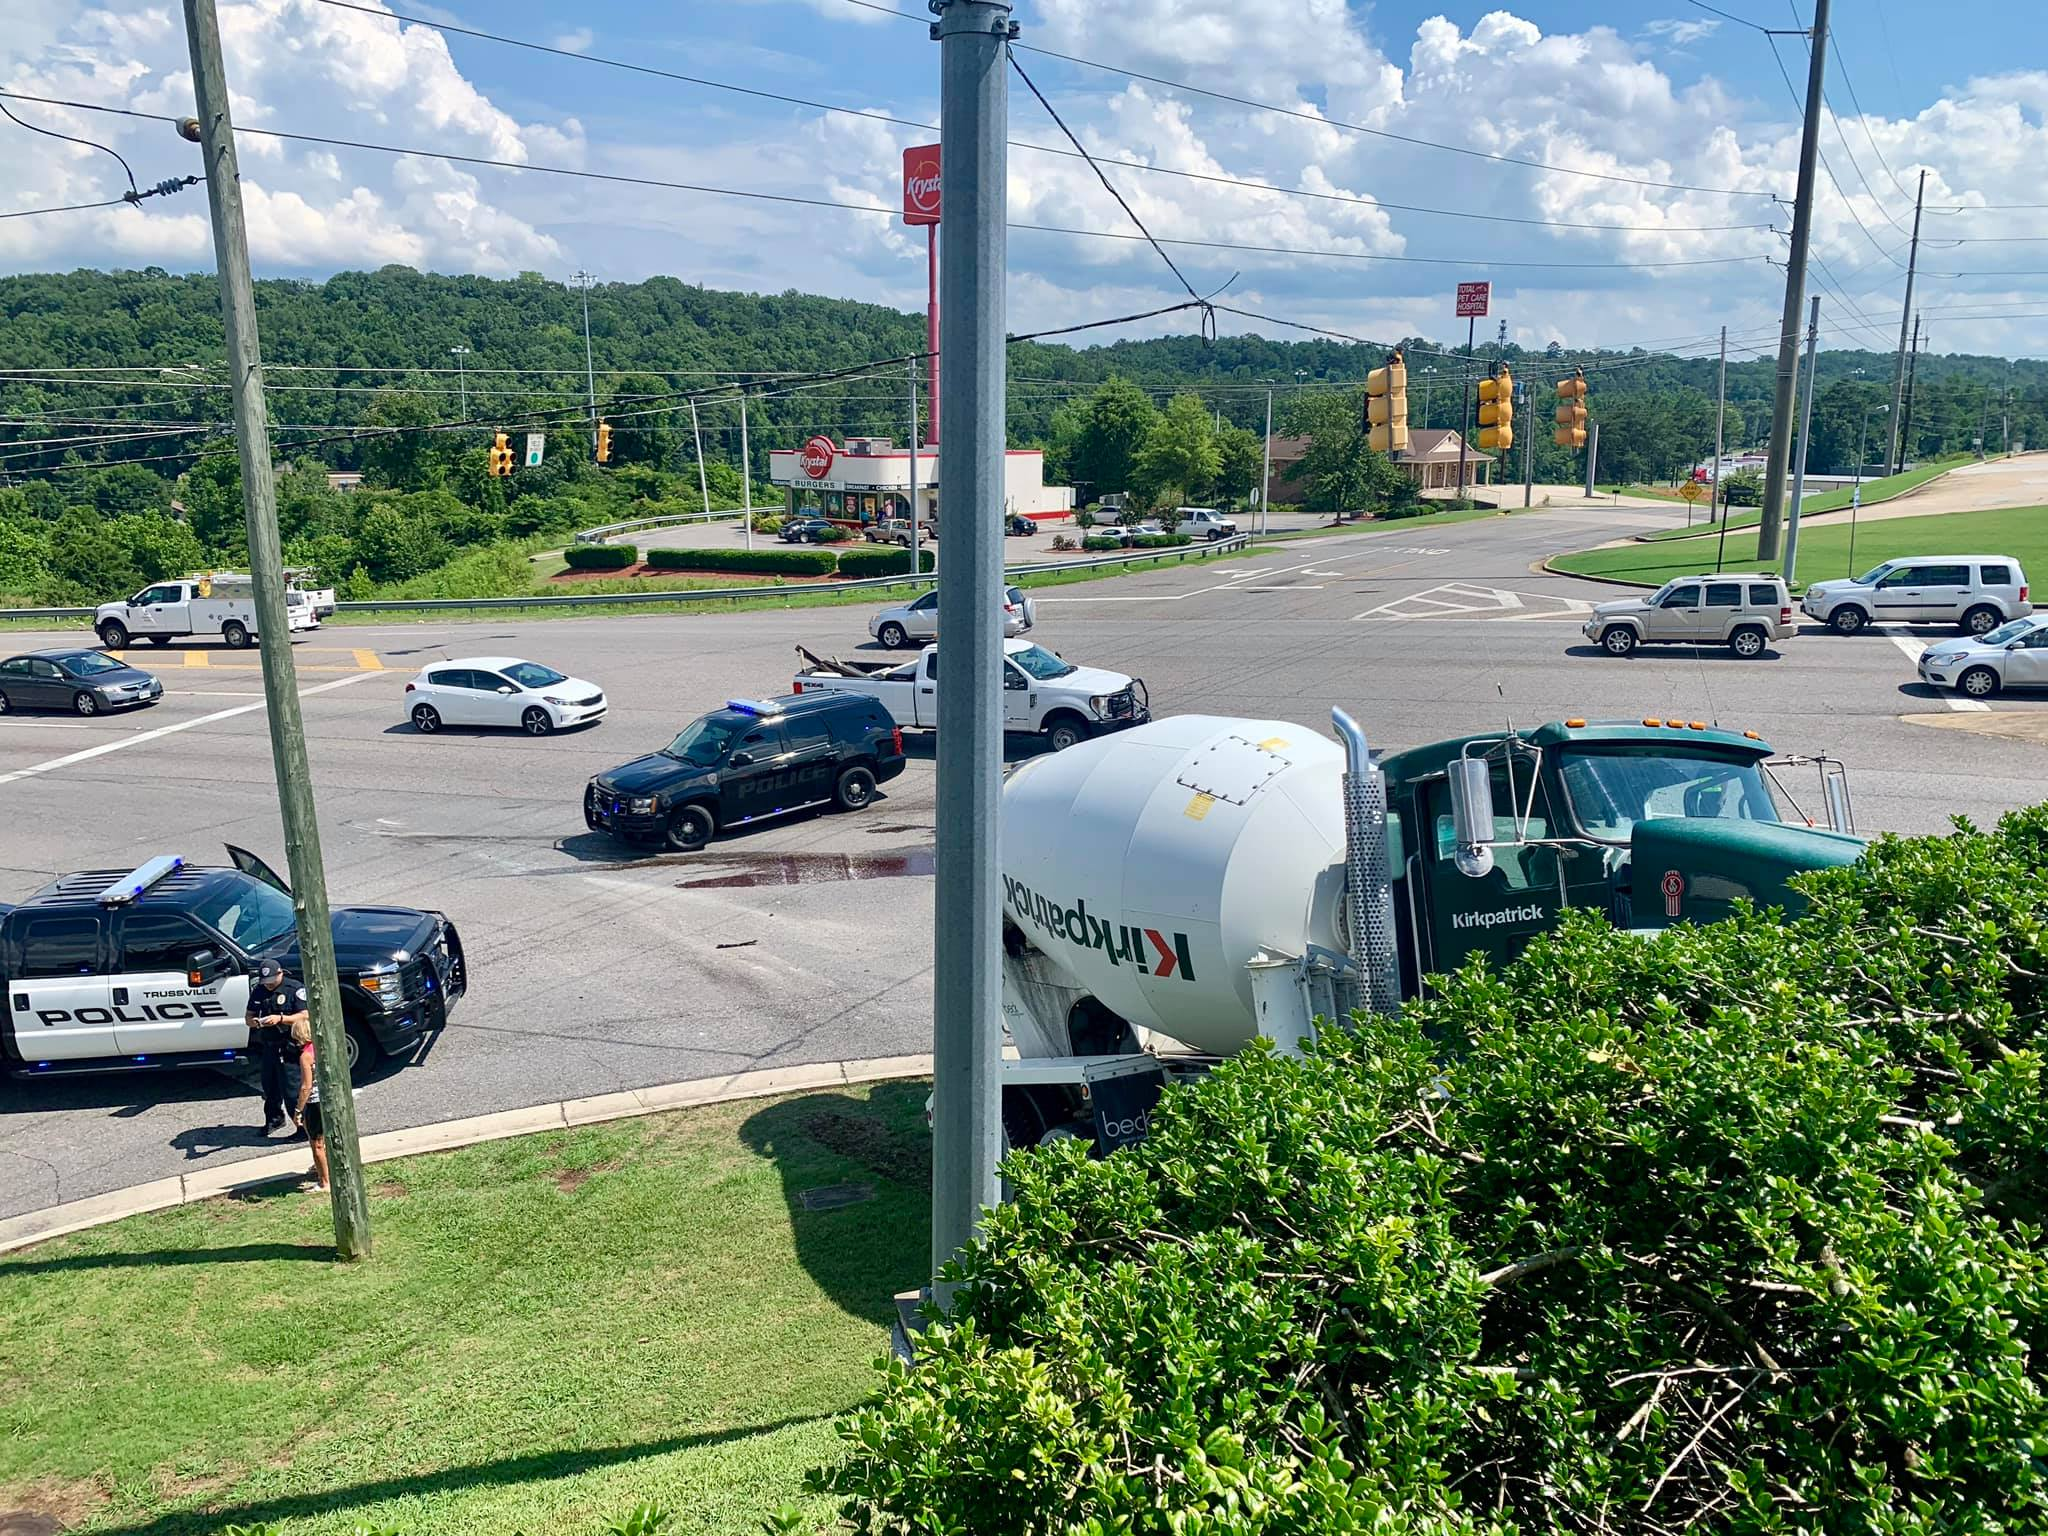 Concrete truck crashes in busy Trussville intersection